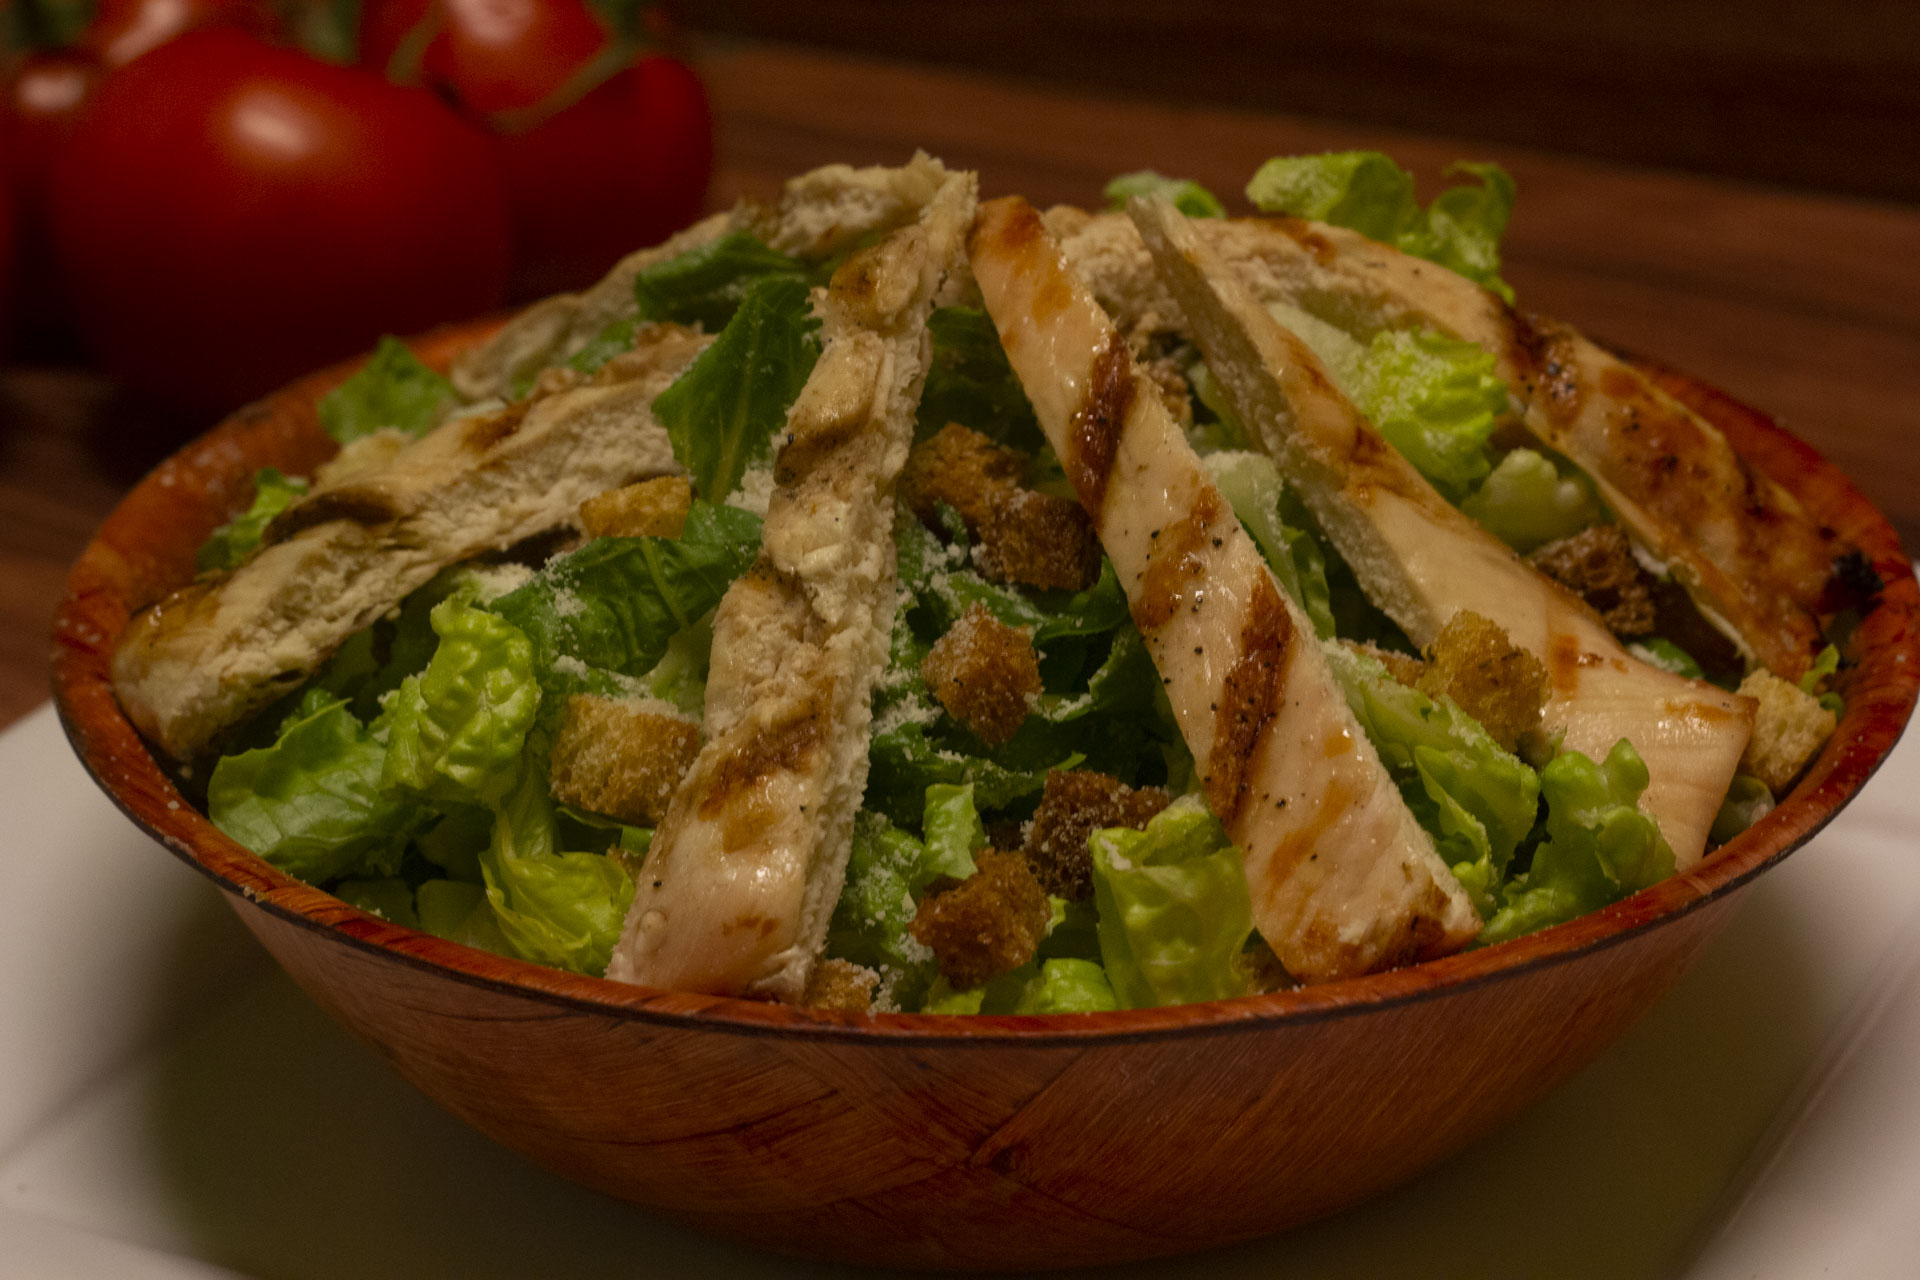 Grilled chicken salad with croutons